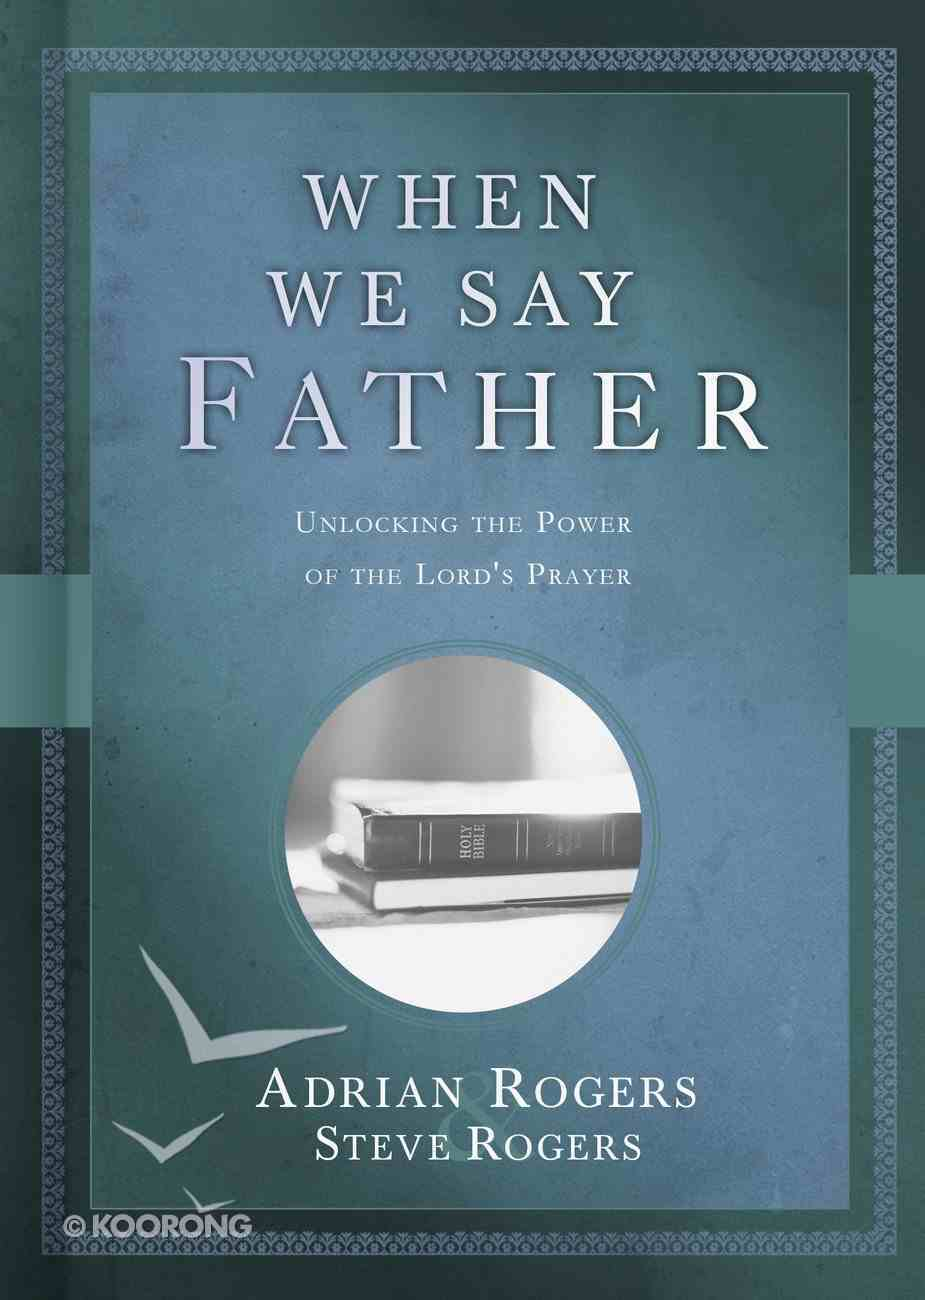 When We Say Father: Unlocking the Power of the Lord's Prayer Hardback